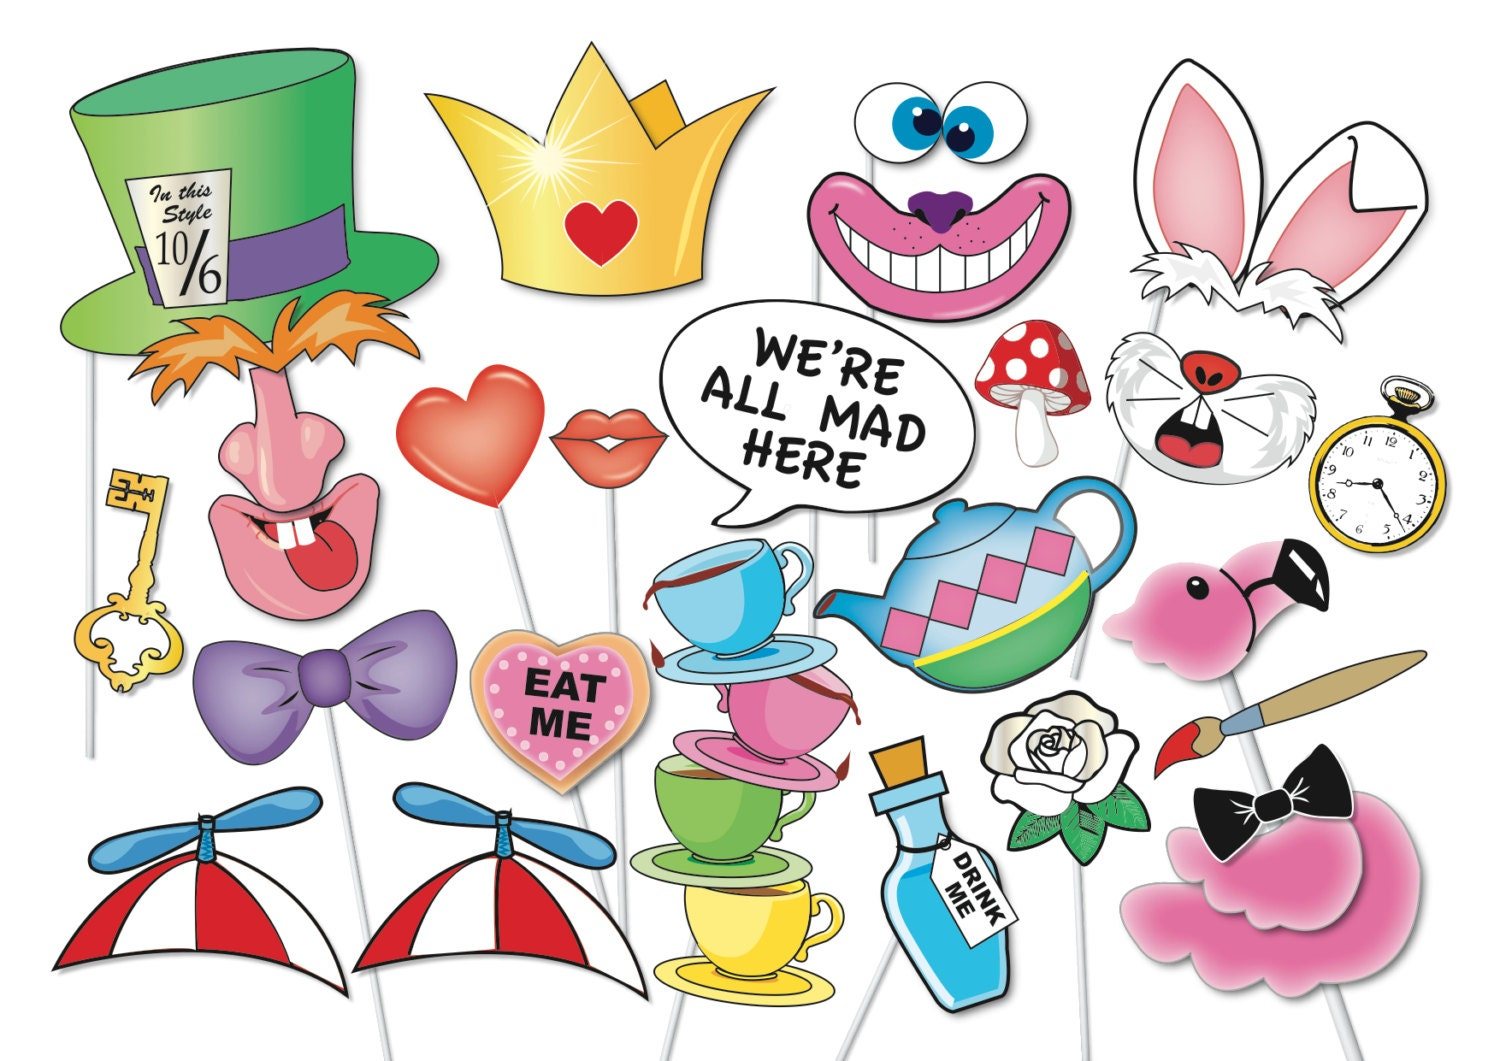 Alice in wonderland party photo booth props set 33 piece for Mad hatter party props